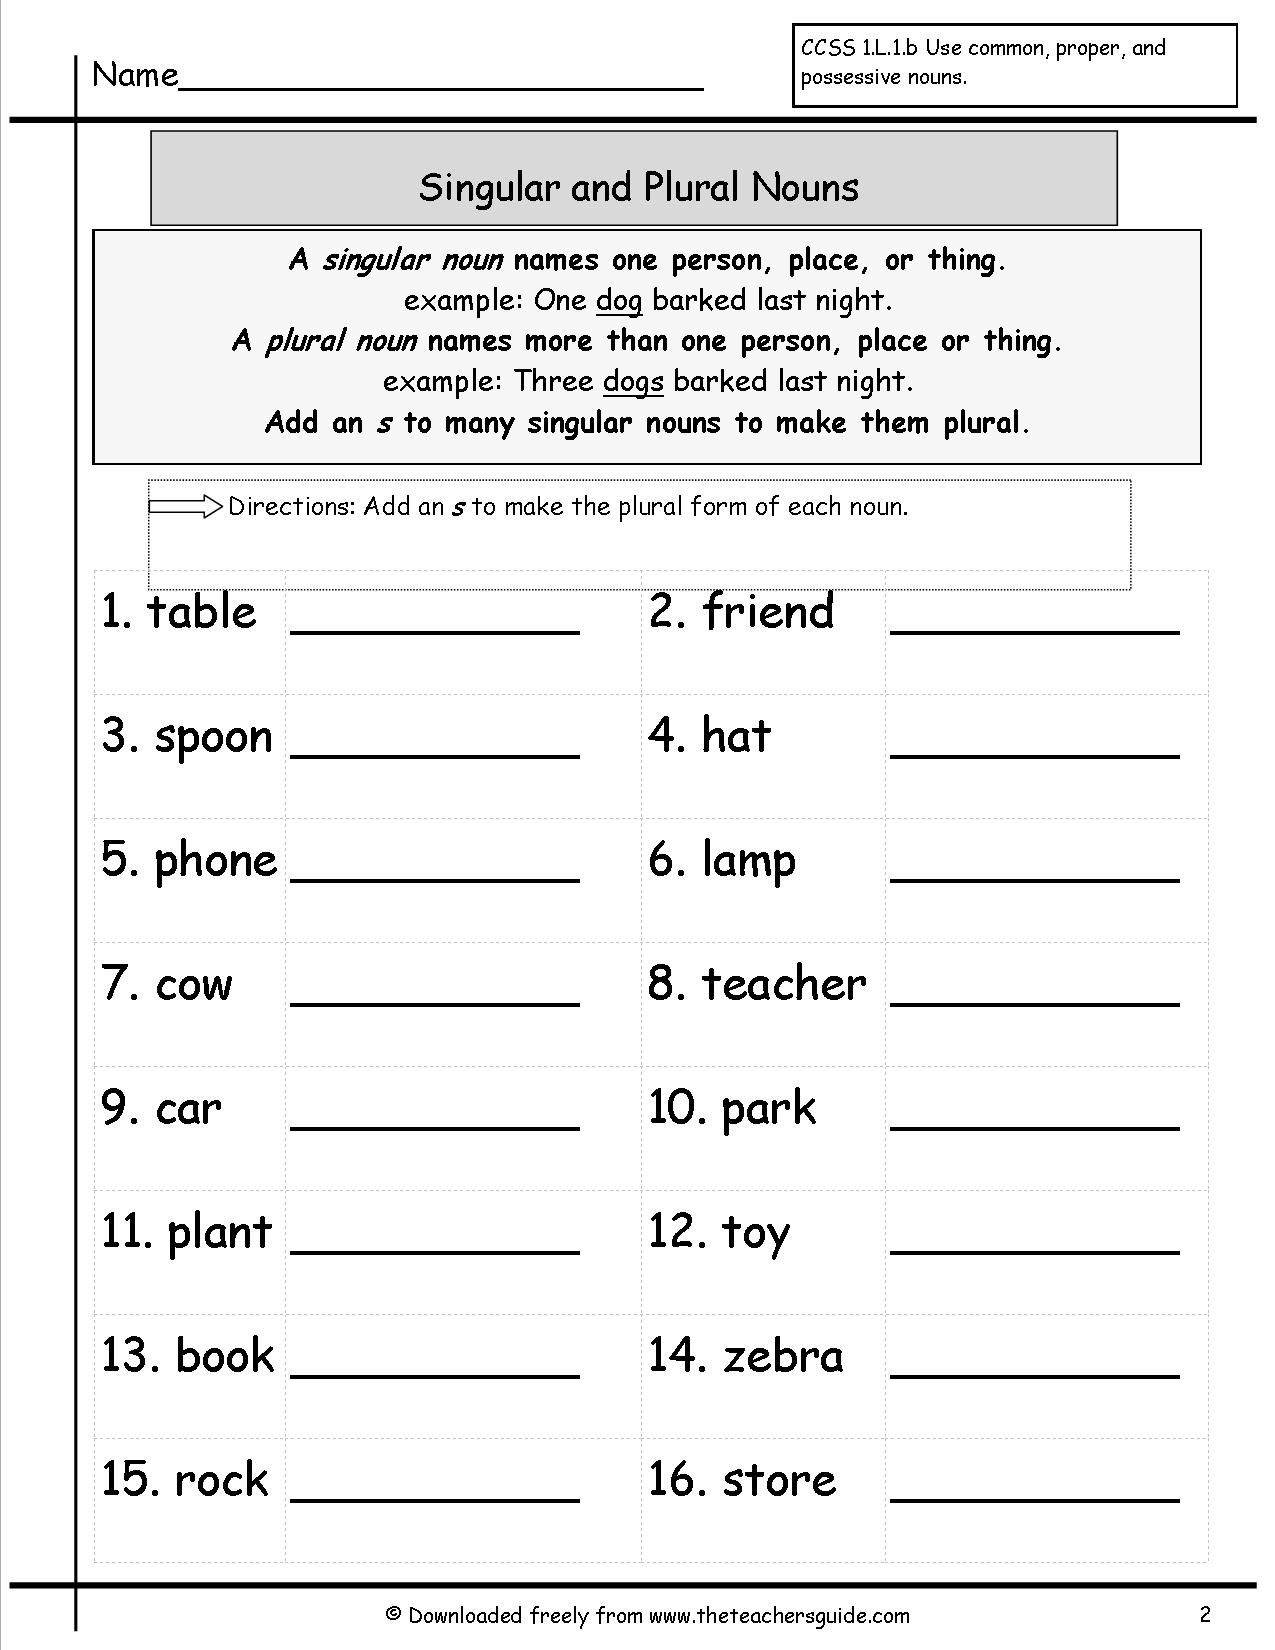 singular and plural nouns | Grammar and Writing | Pinterest ...